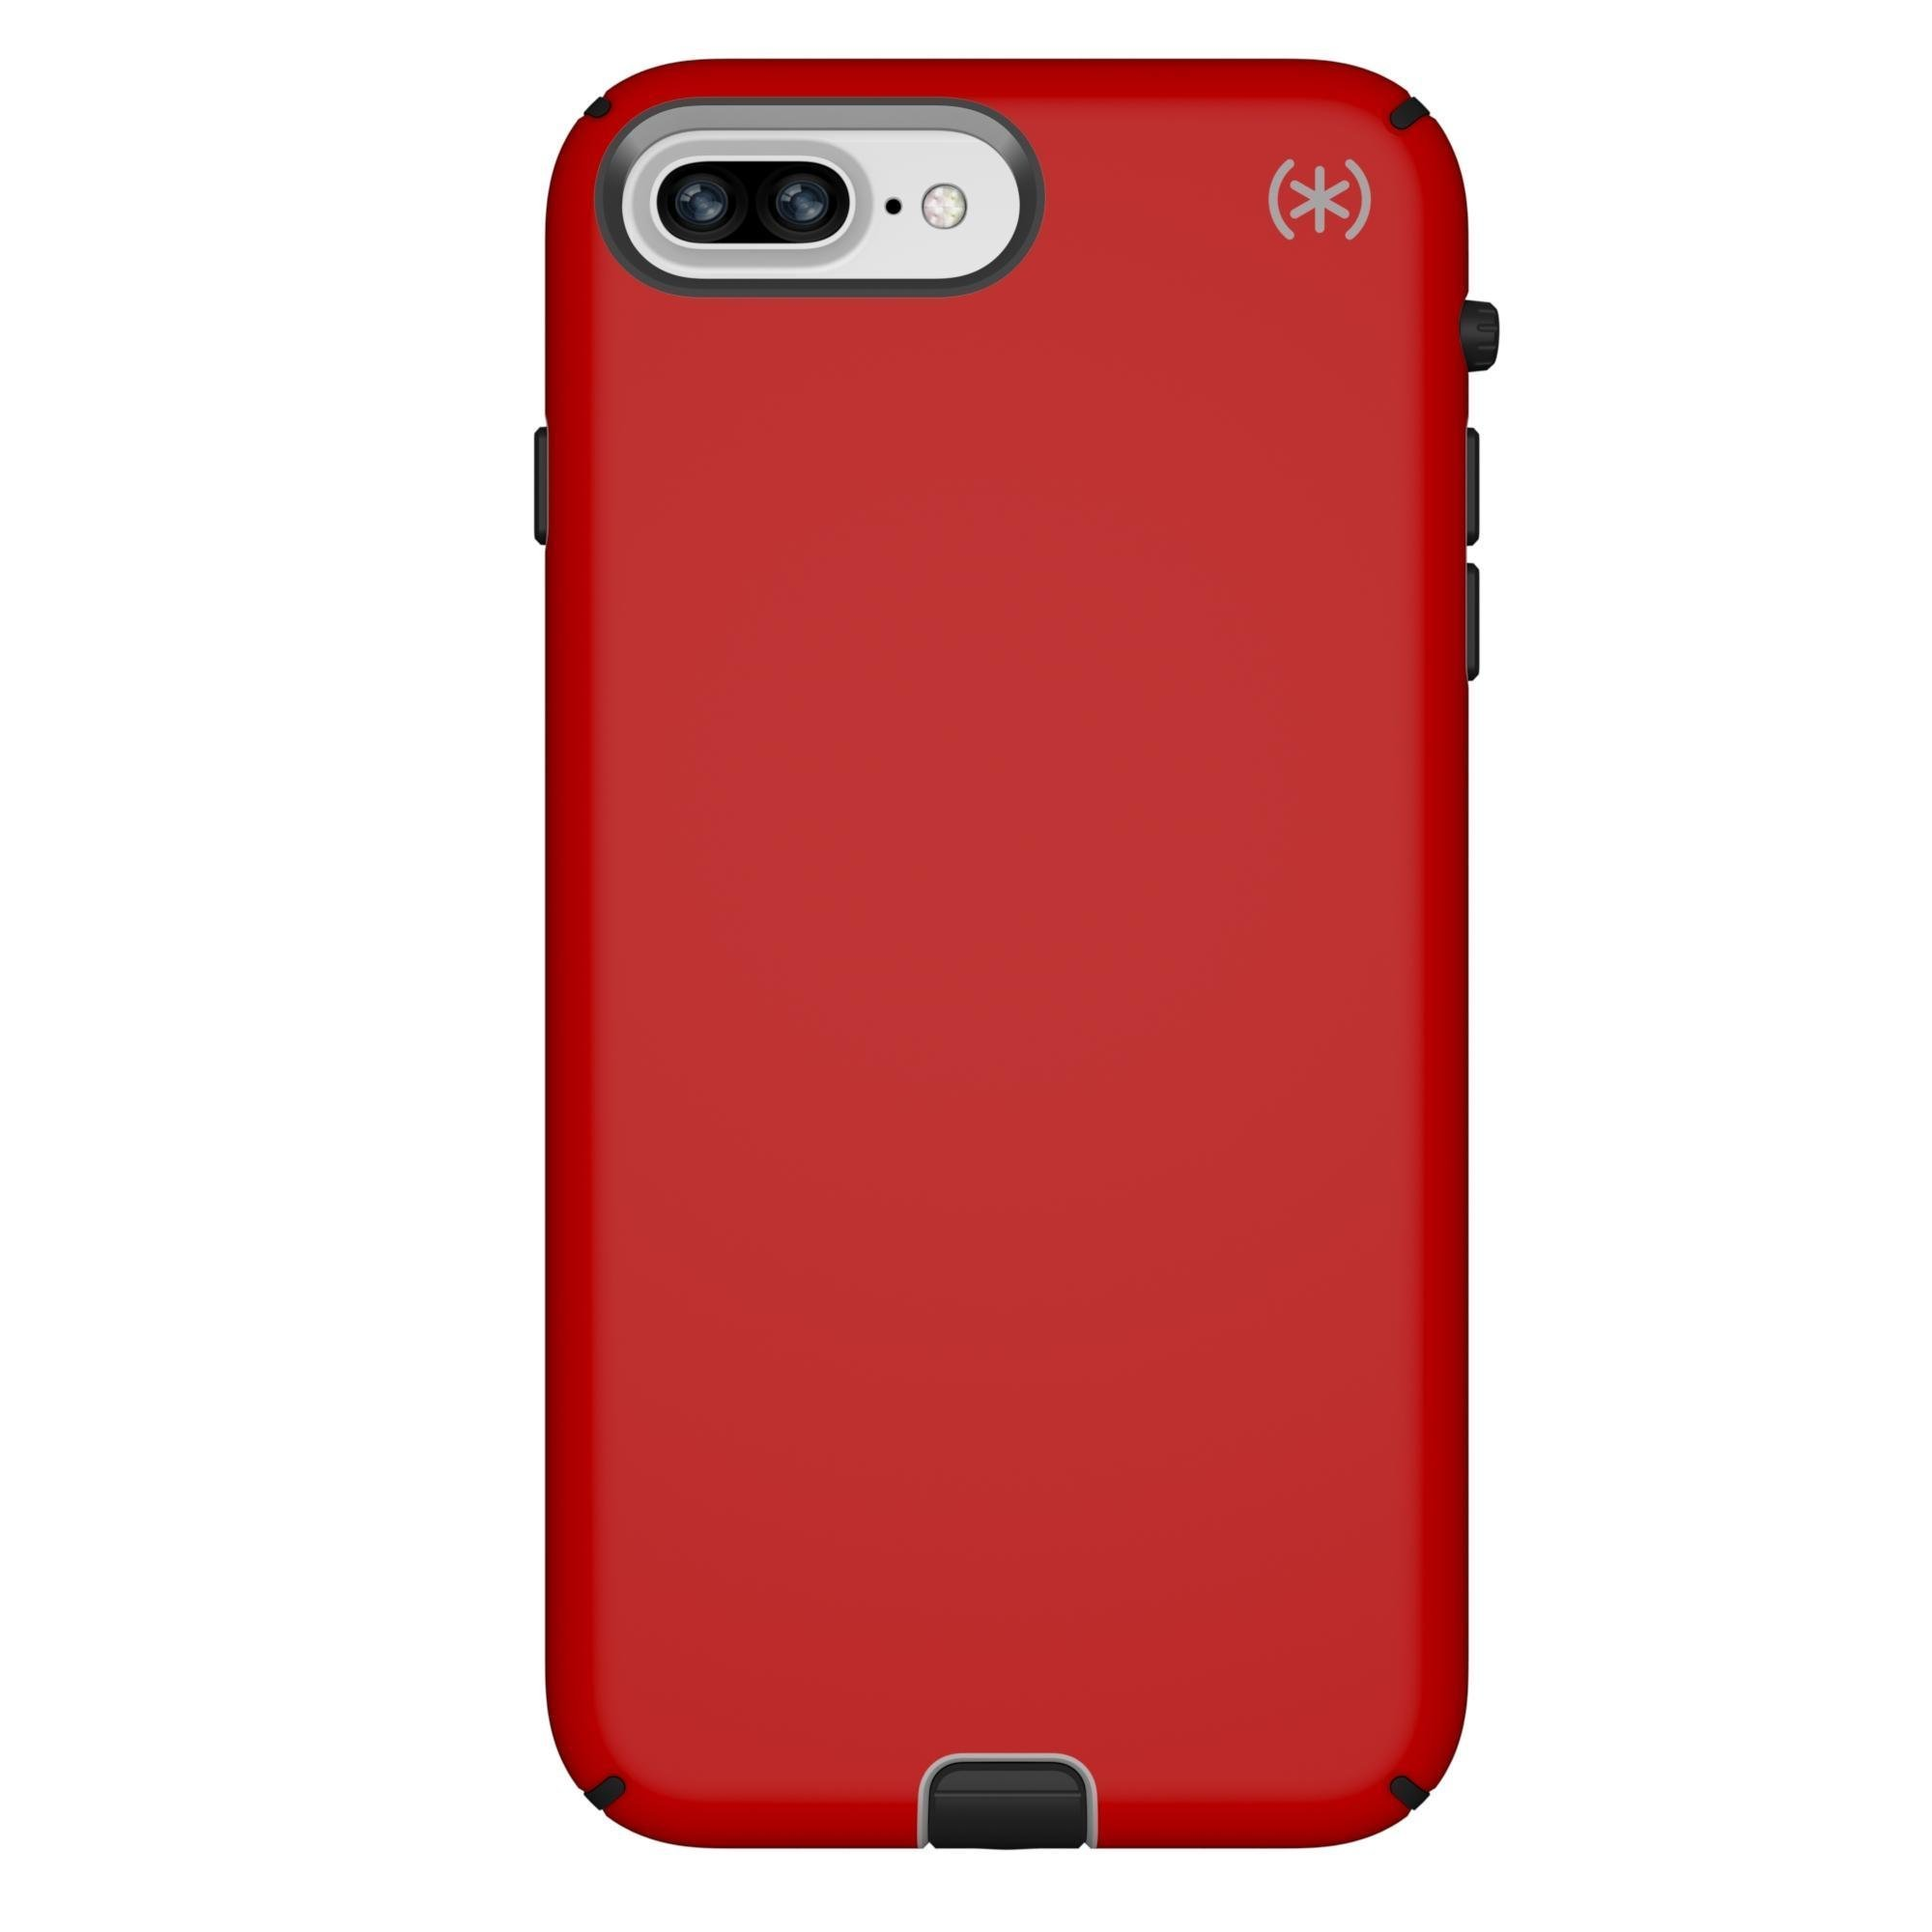 Speck Presidio Sport Phone Case Cover for iPhone 6/6s/7/8 - Red